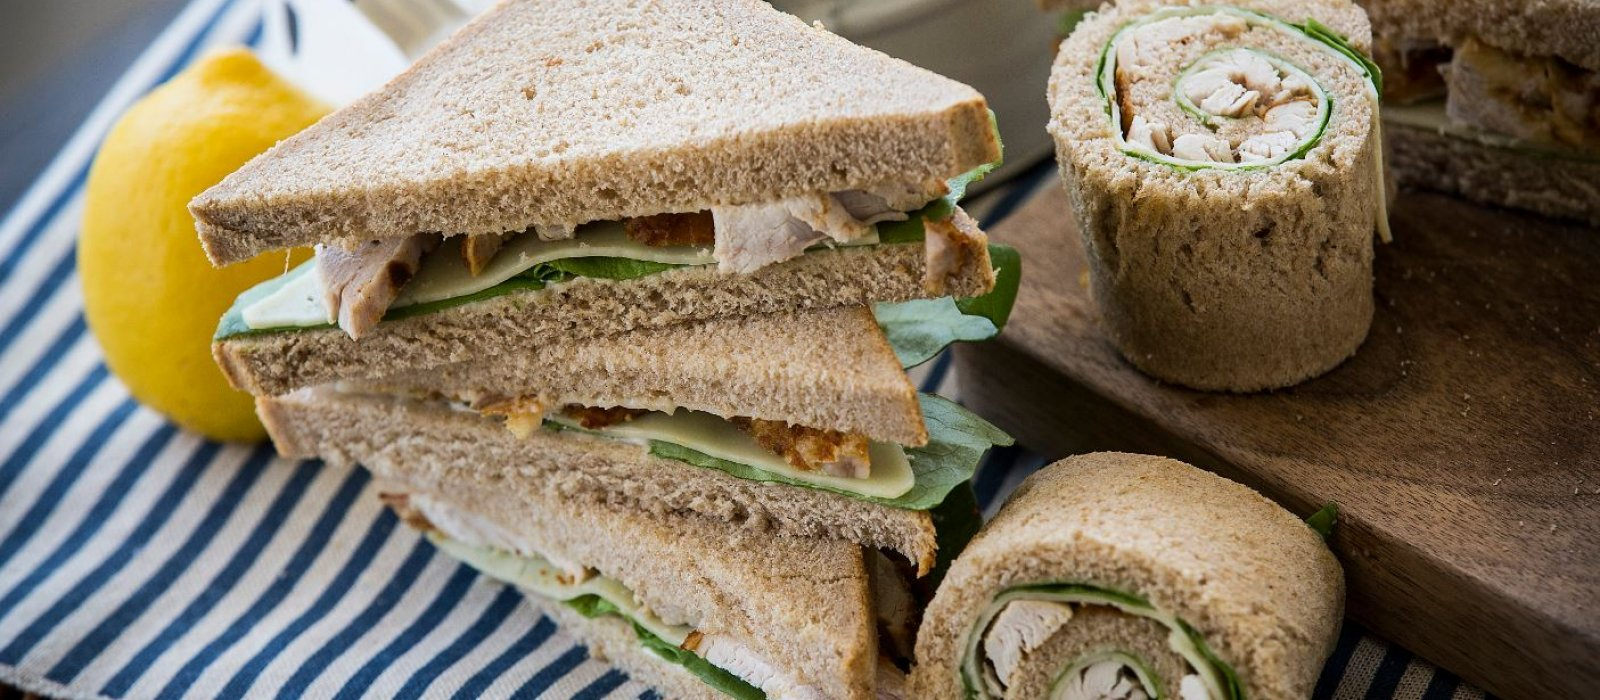 <span>Zin sliced bread with Roasted Chicken &amp; Aromatic Mayonnaise Spread (light)</span>